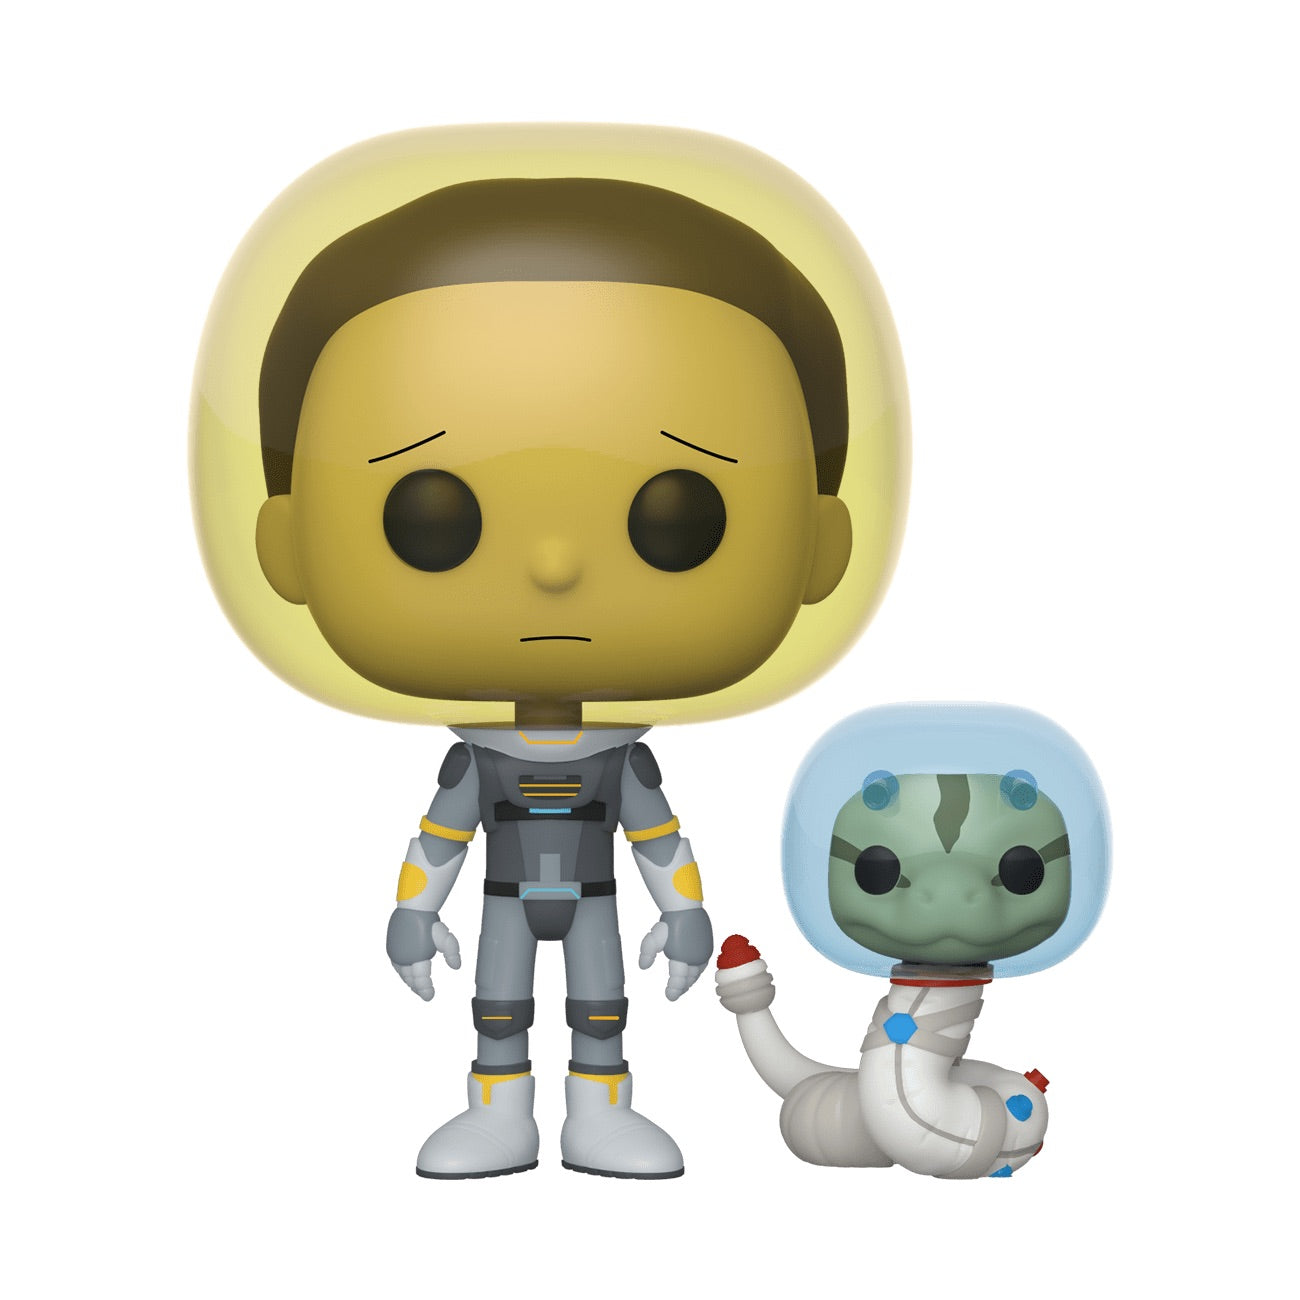 Rick and Morty Space Suit Morty With Snake